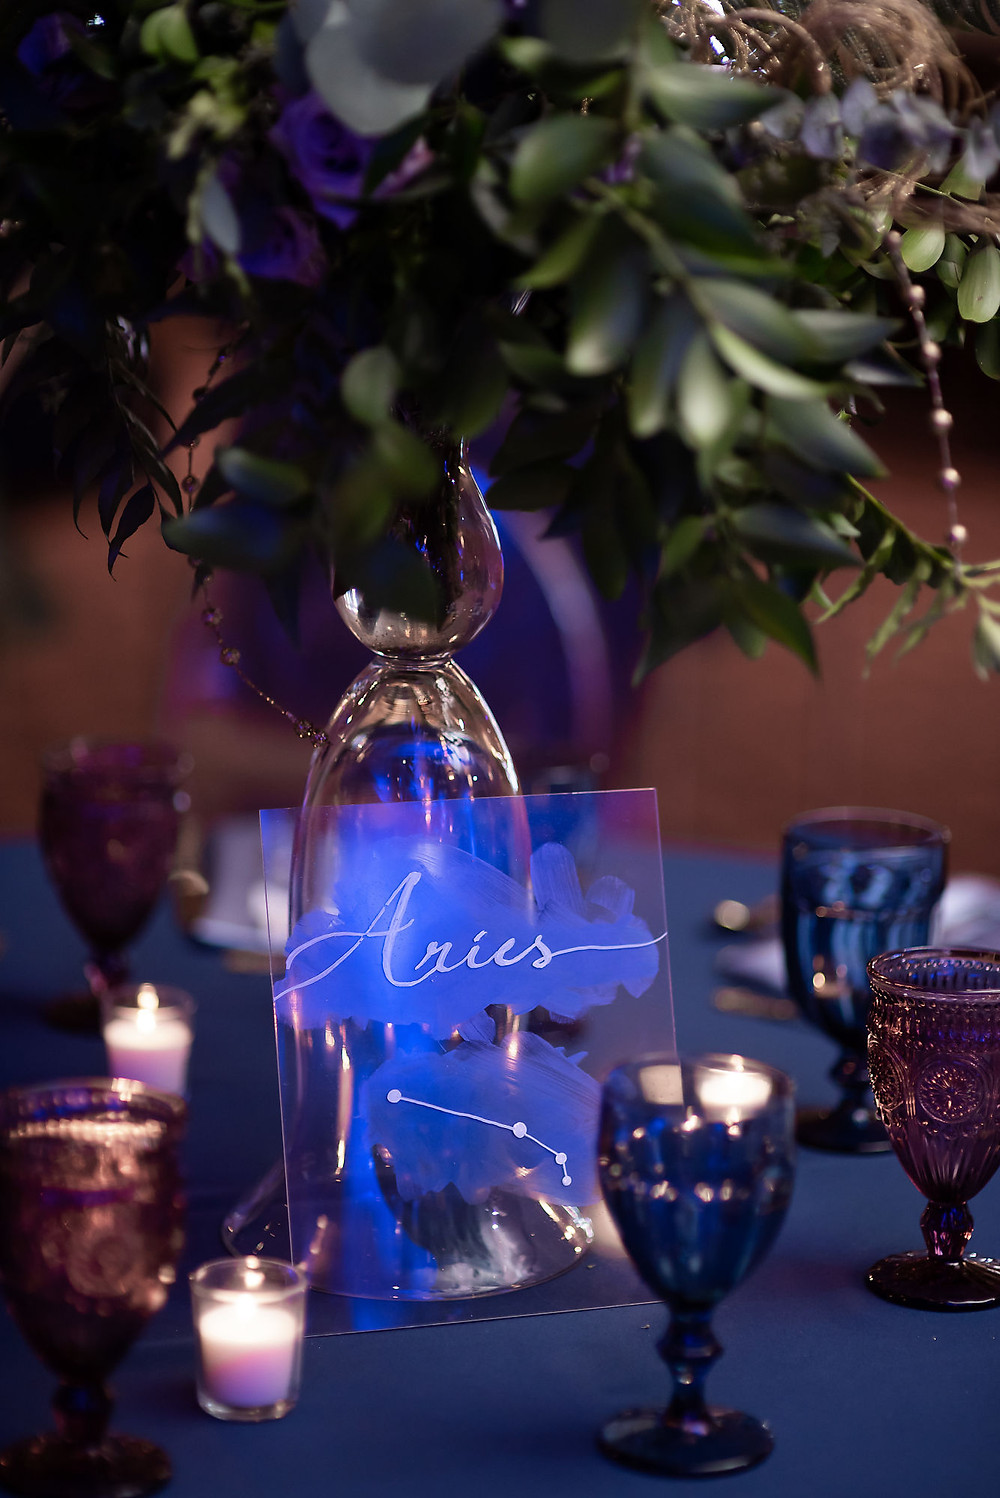 Celestial Wedding Table Numbers